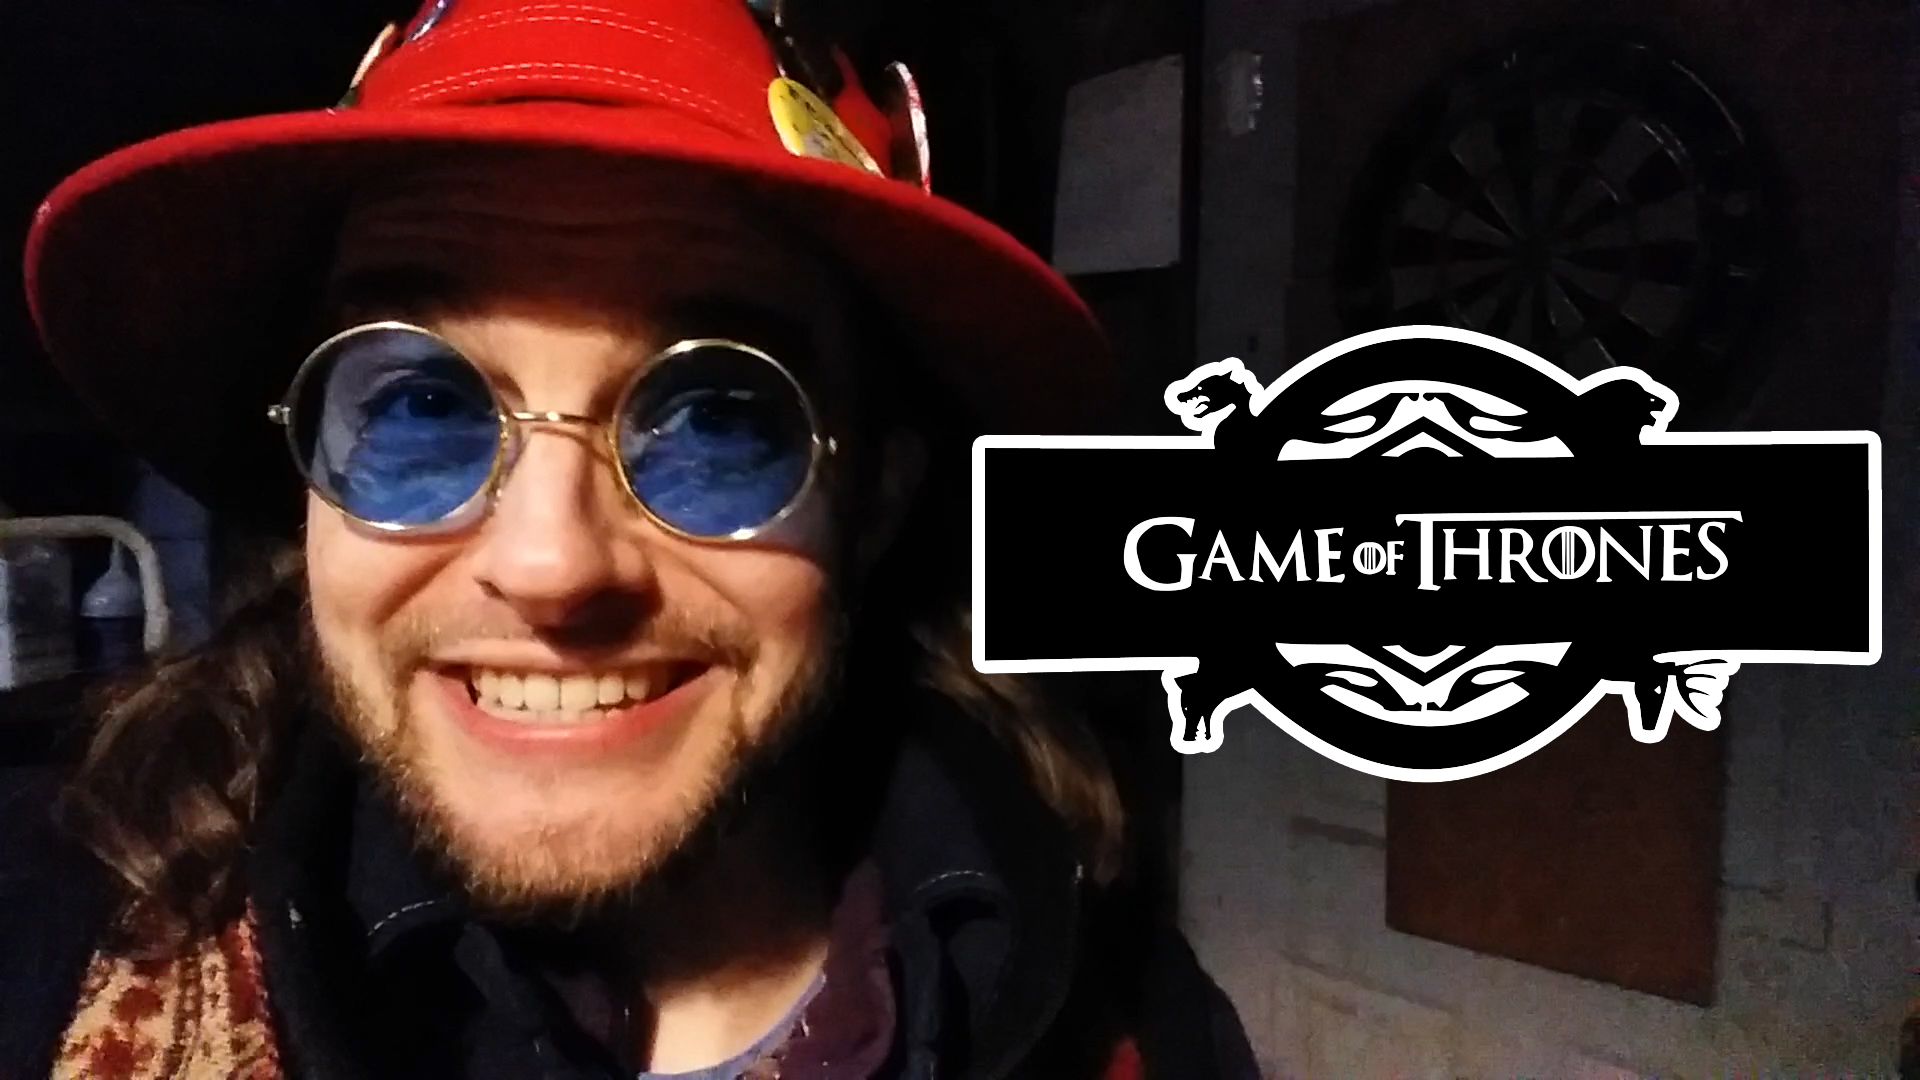 2019-04-14 Game of Thrones day